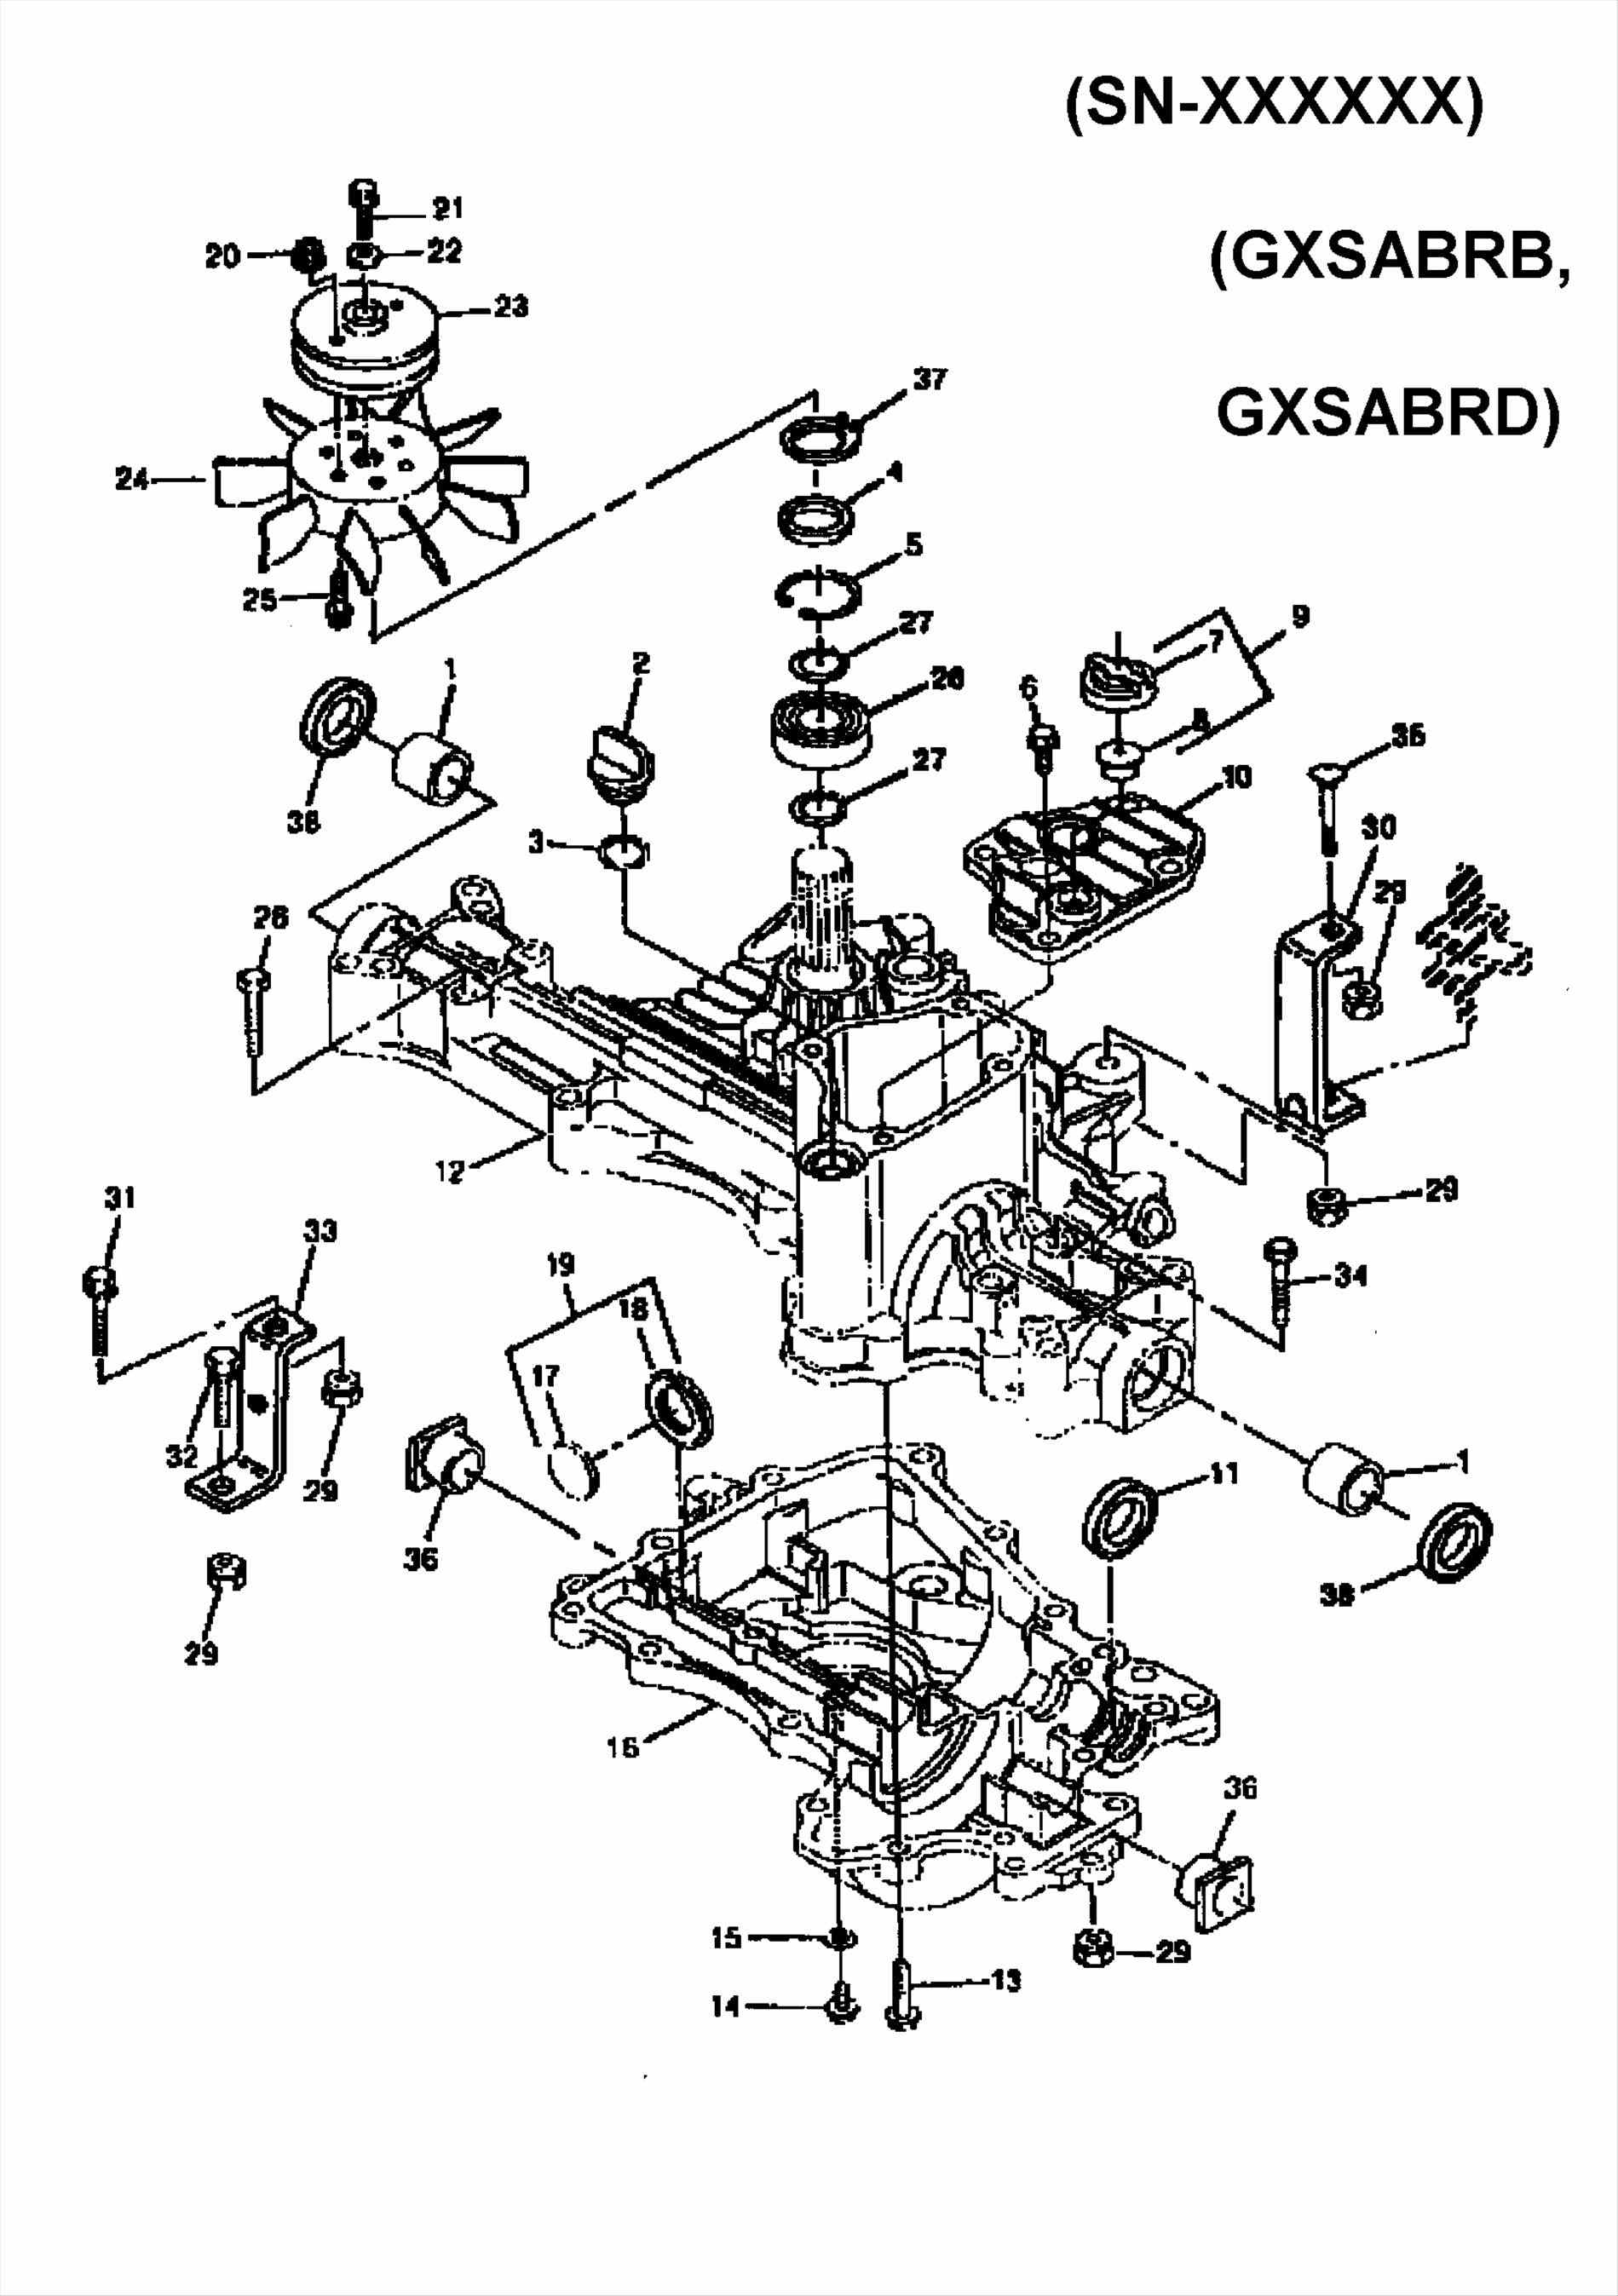 Sears Lawn Tractor Wiring Diagram Wiring Diagram ShrutiRadio Lawn Mowers Riding Lawn Mower Parts Diagram Hp